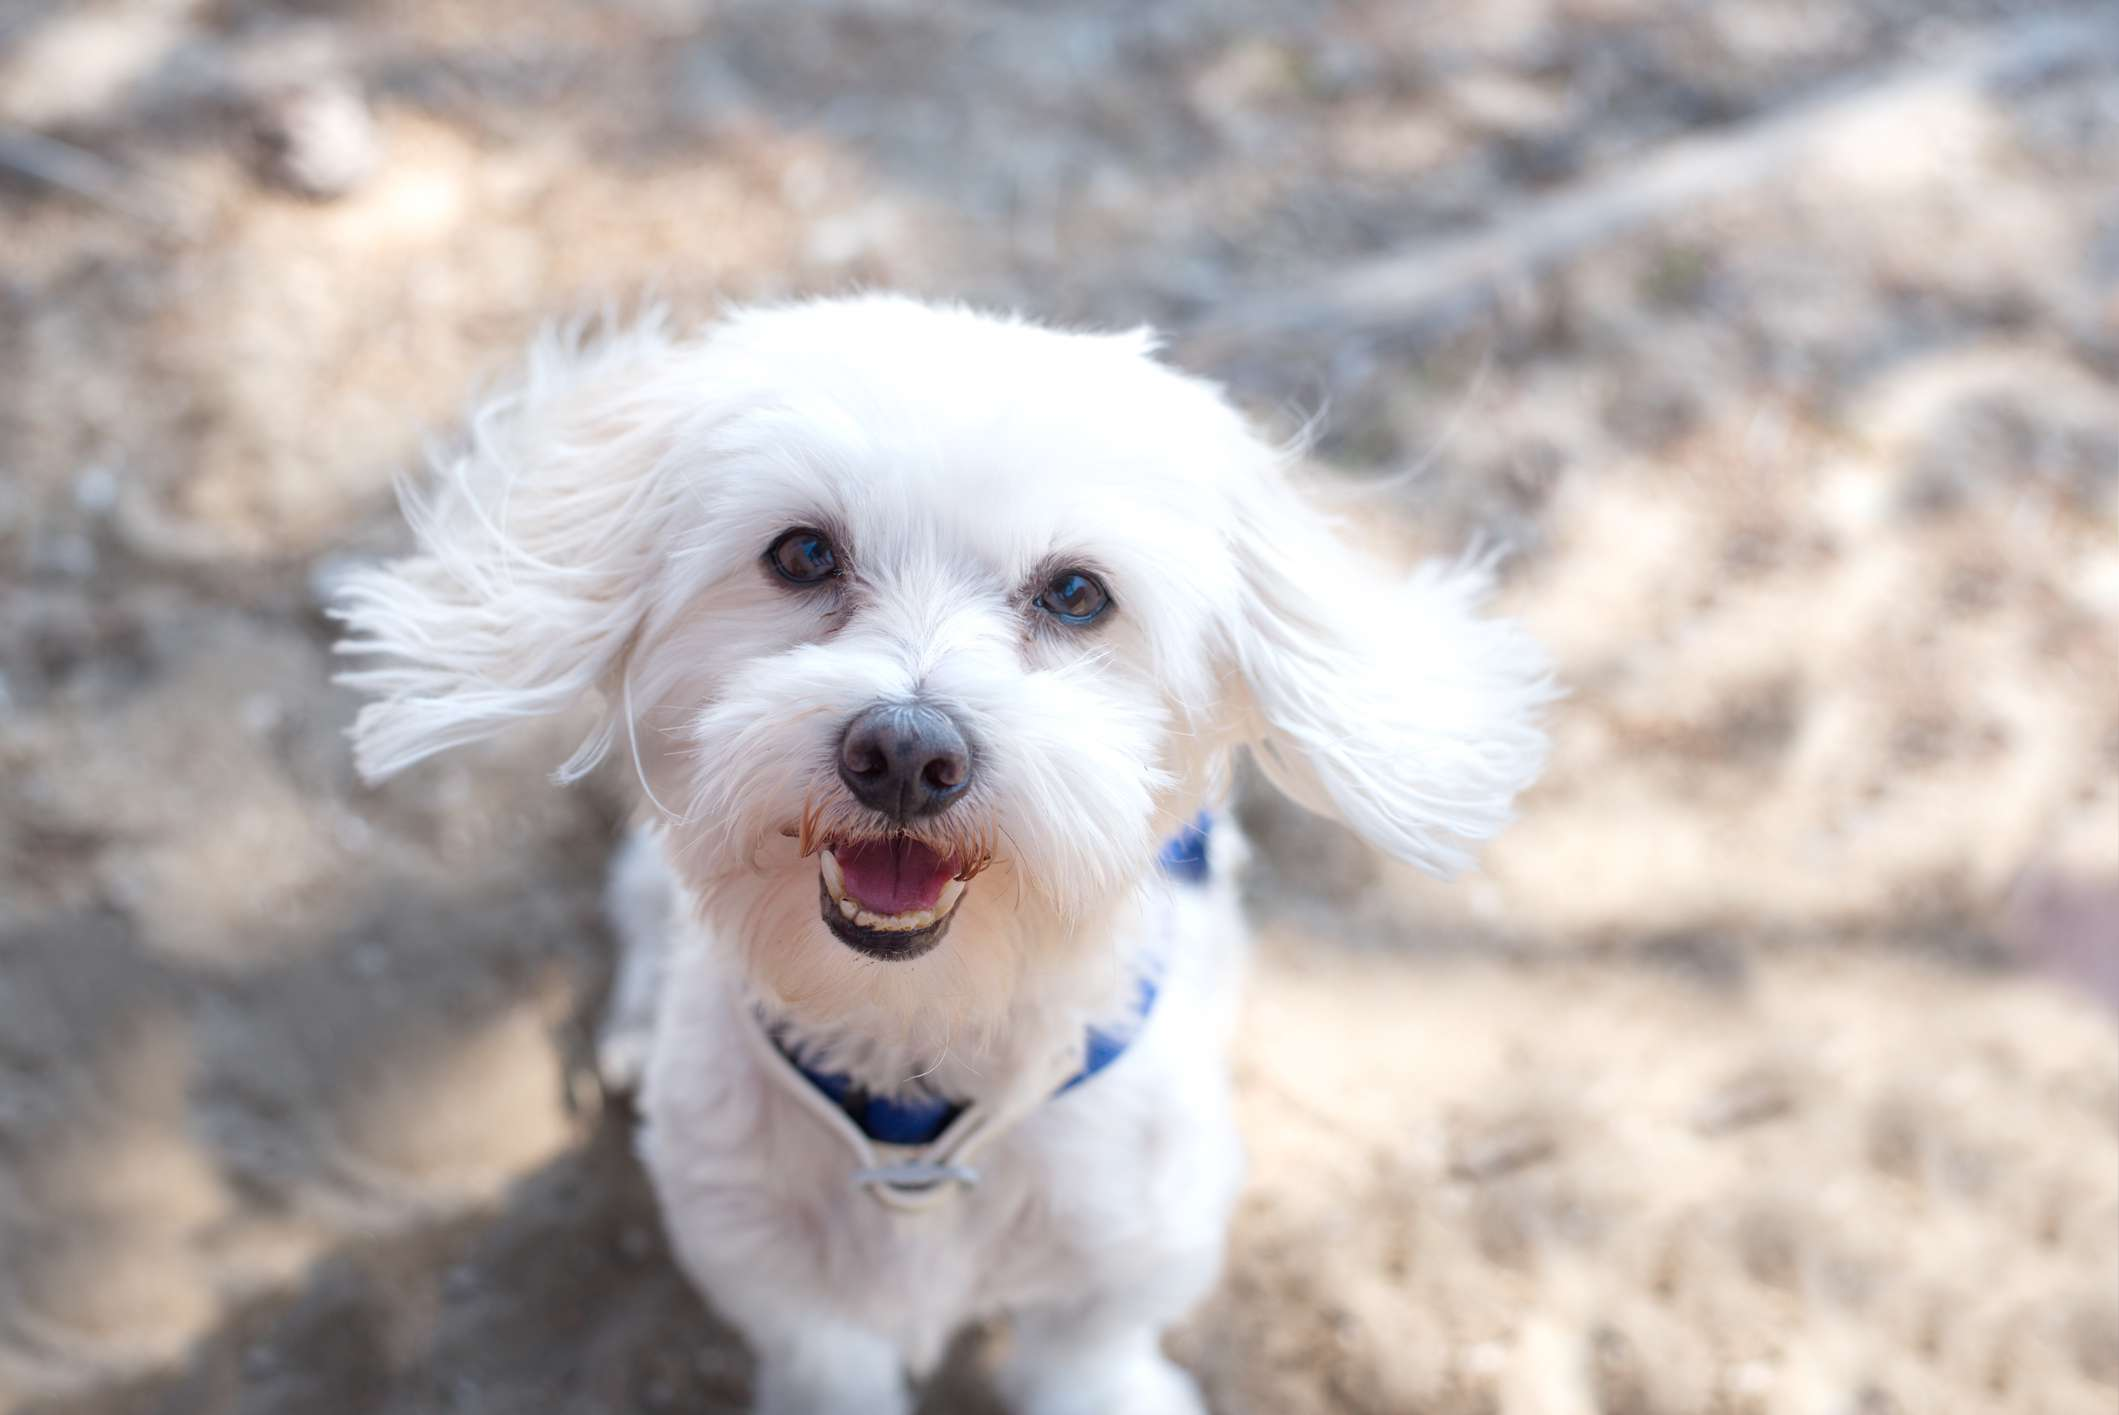 Maltese in blue collar looking up at camera and smiling.